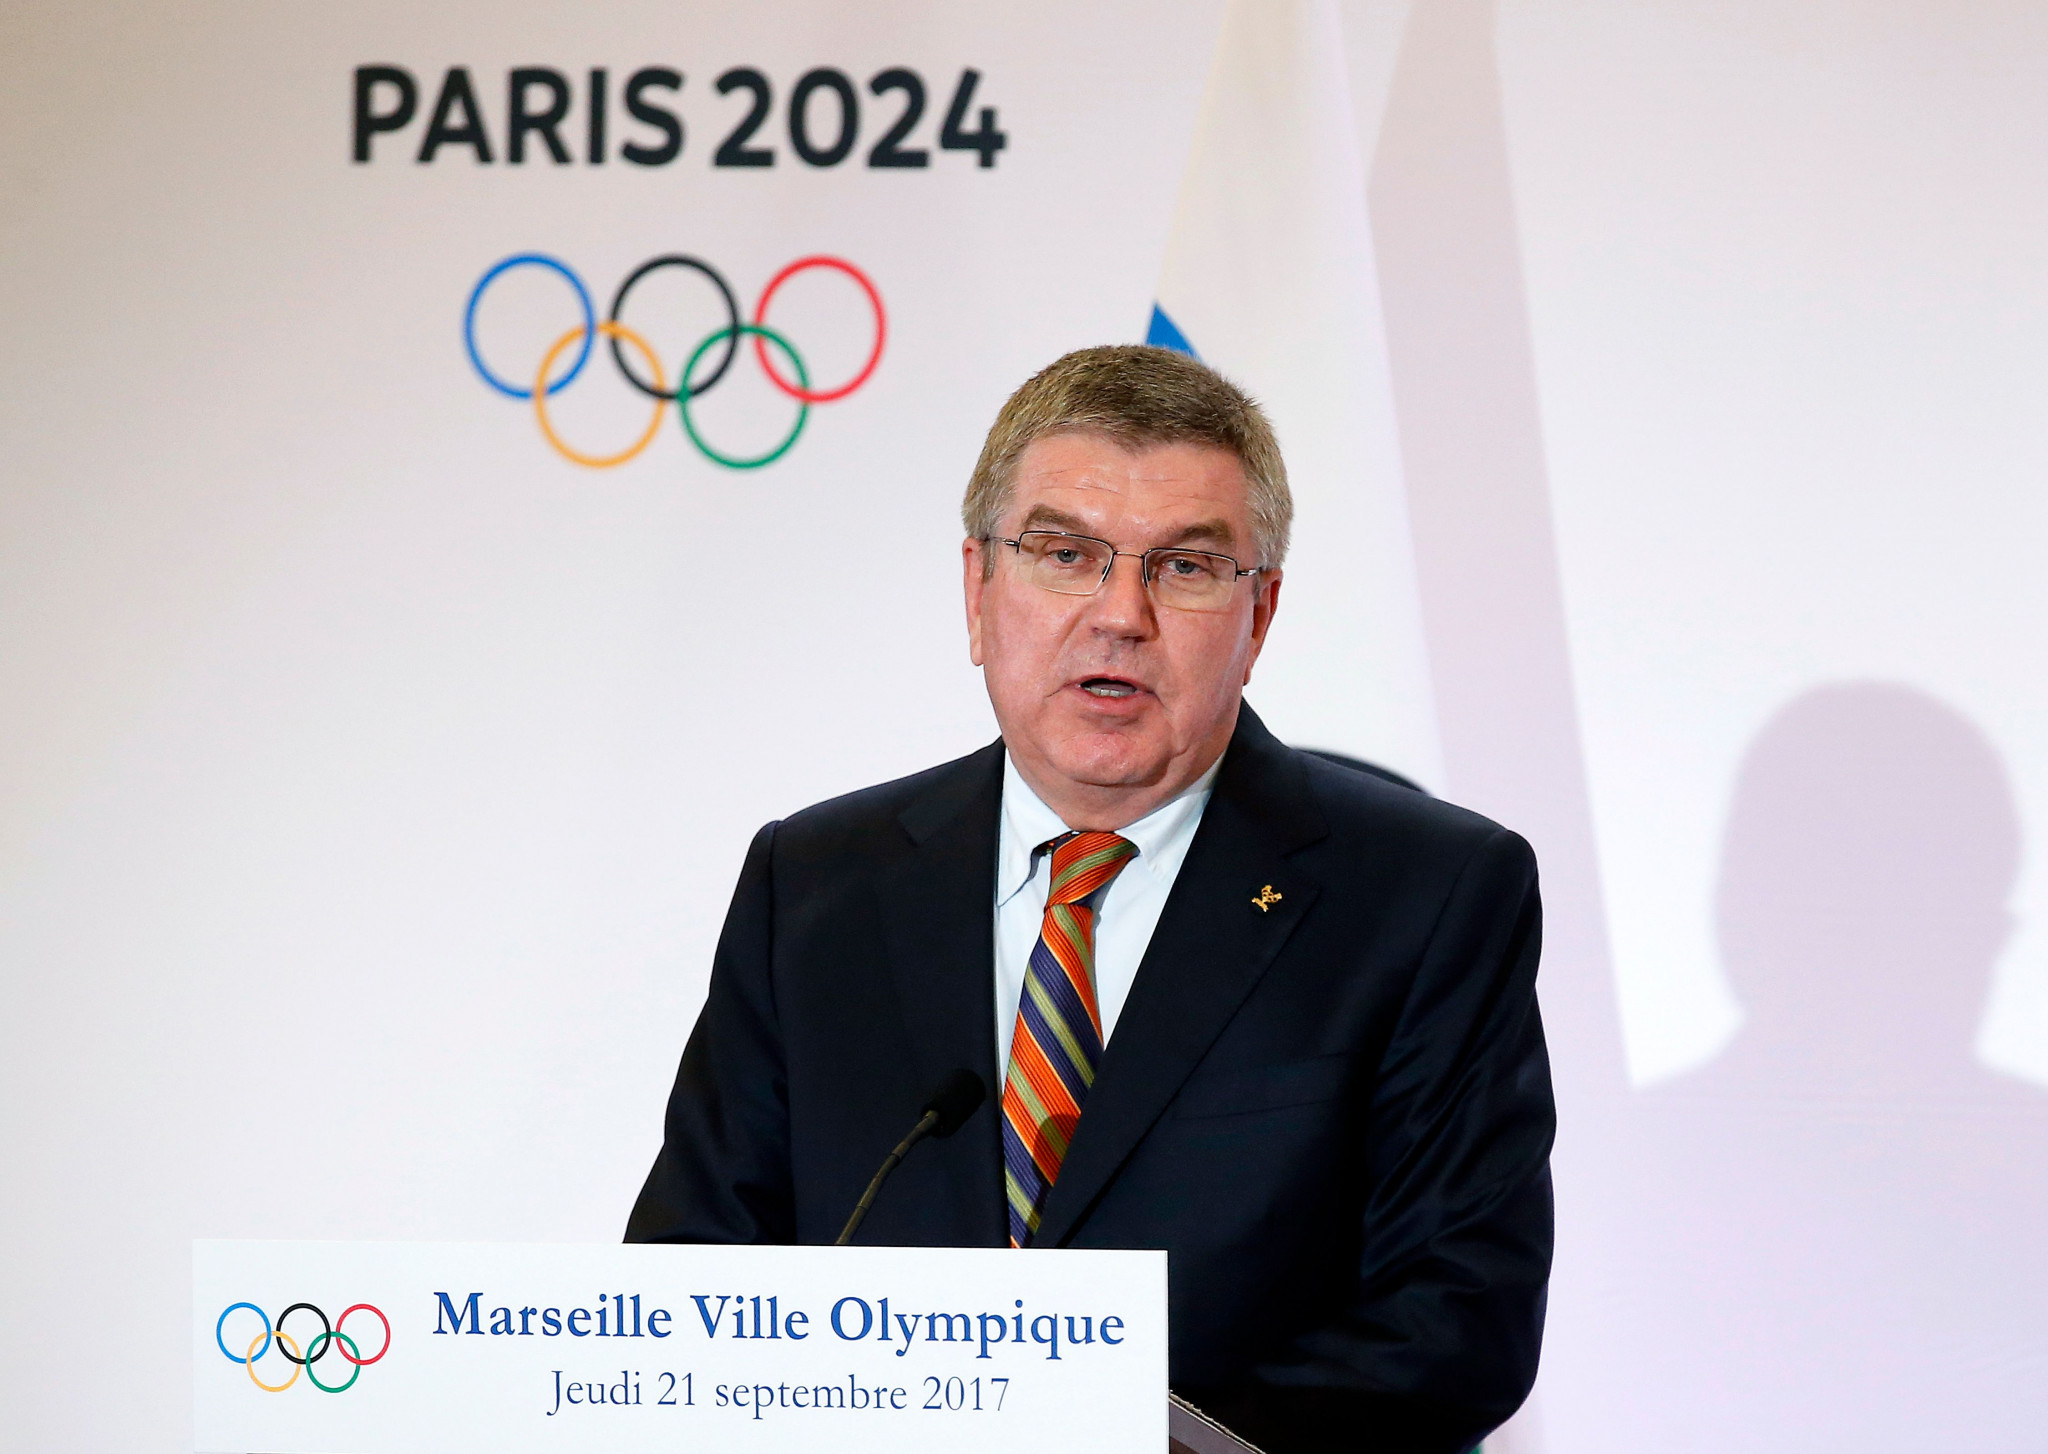 Thomas Bach will deliver opening remarks at the Advancing Women in Leadership Roles Forum ©Getty Images